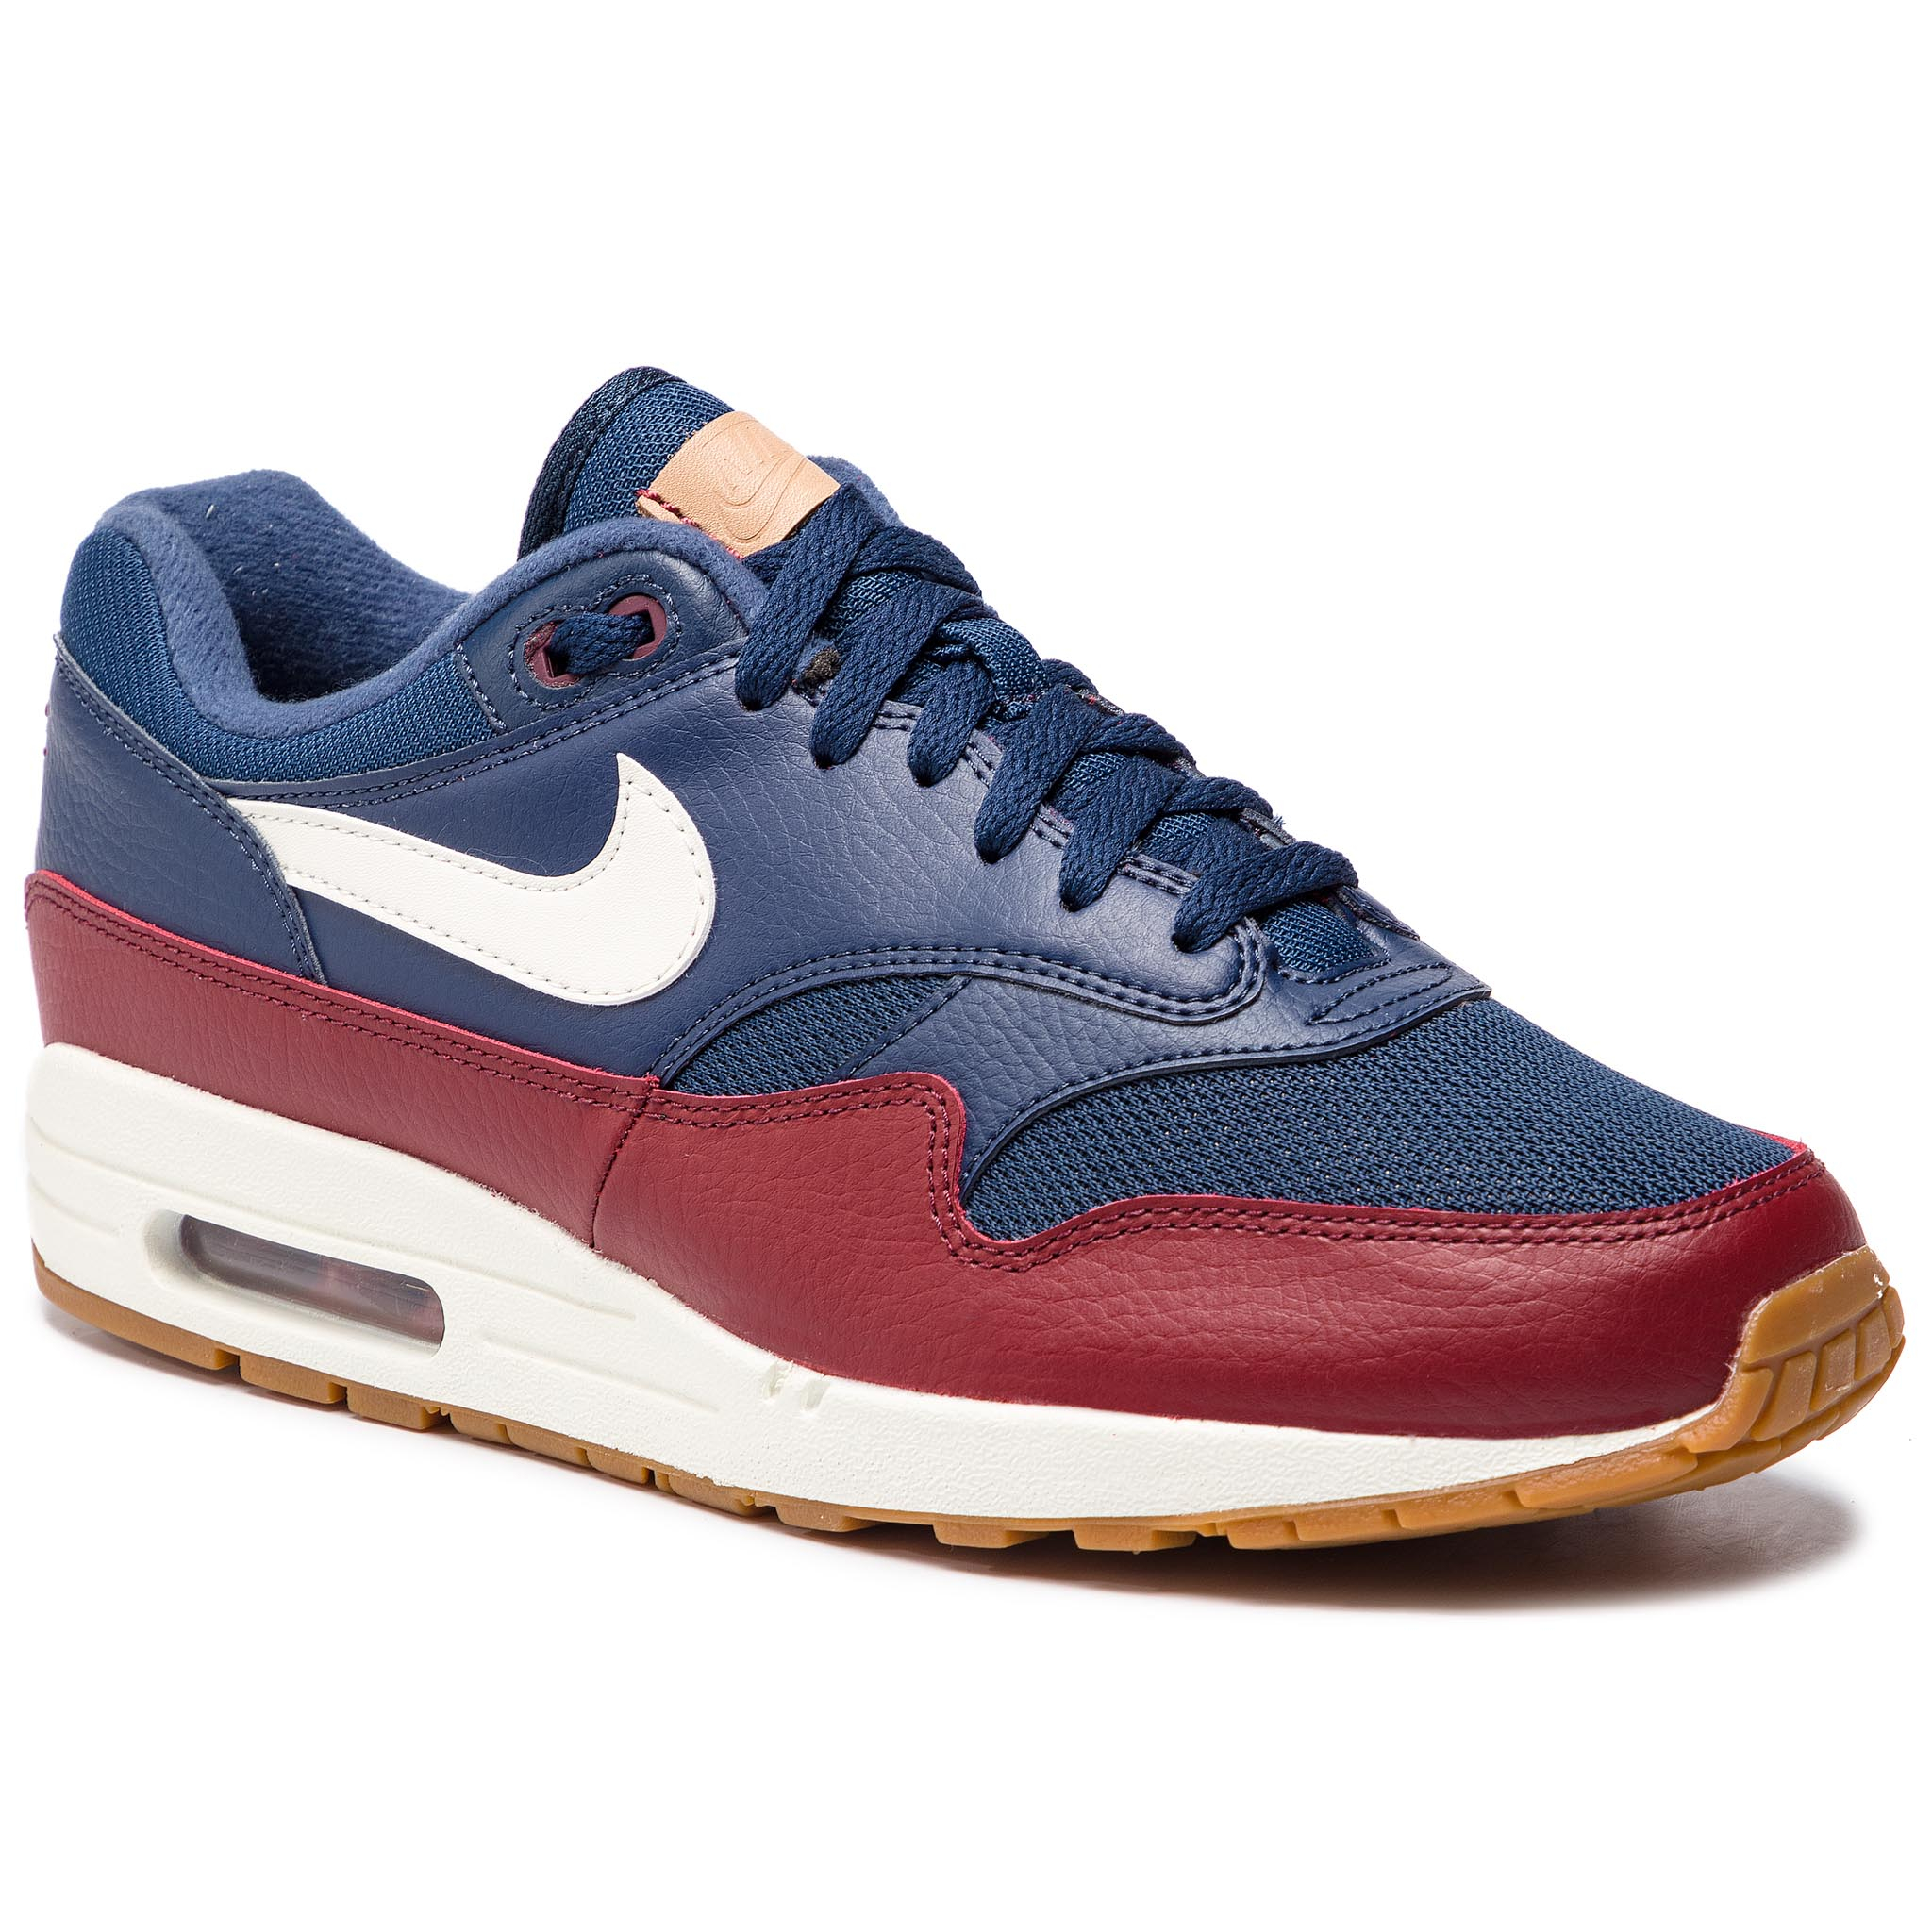 c3b37fc5 Batai NIKE - Air Max 1 AH8145 400 Navy/Sail/Team Red/Sail